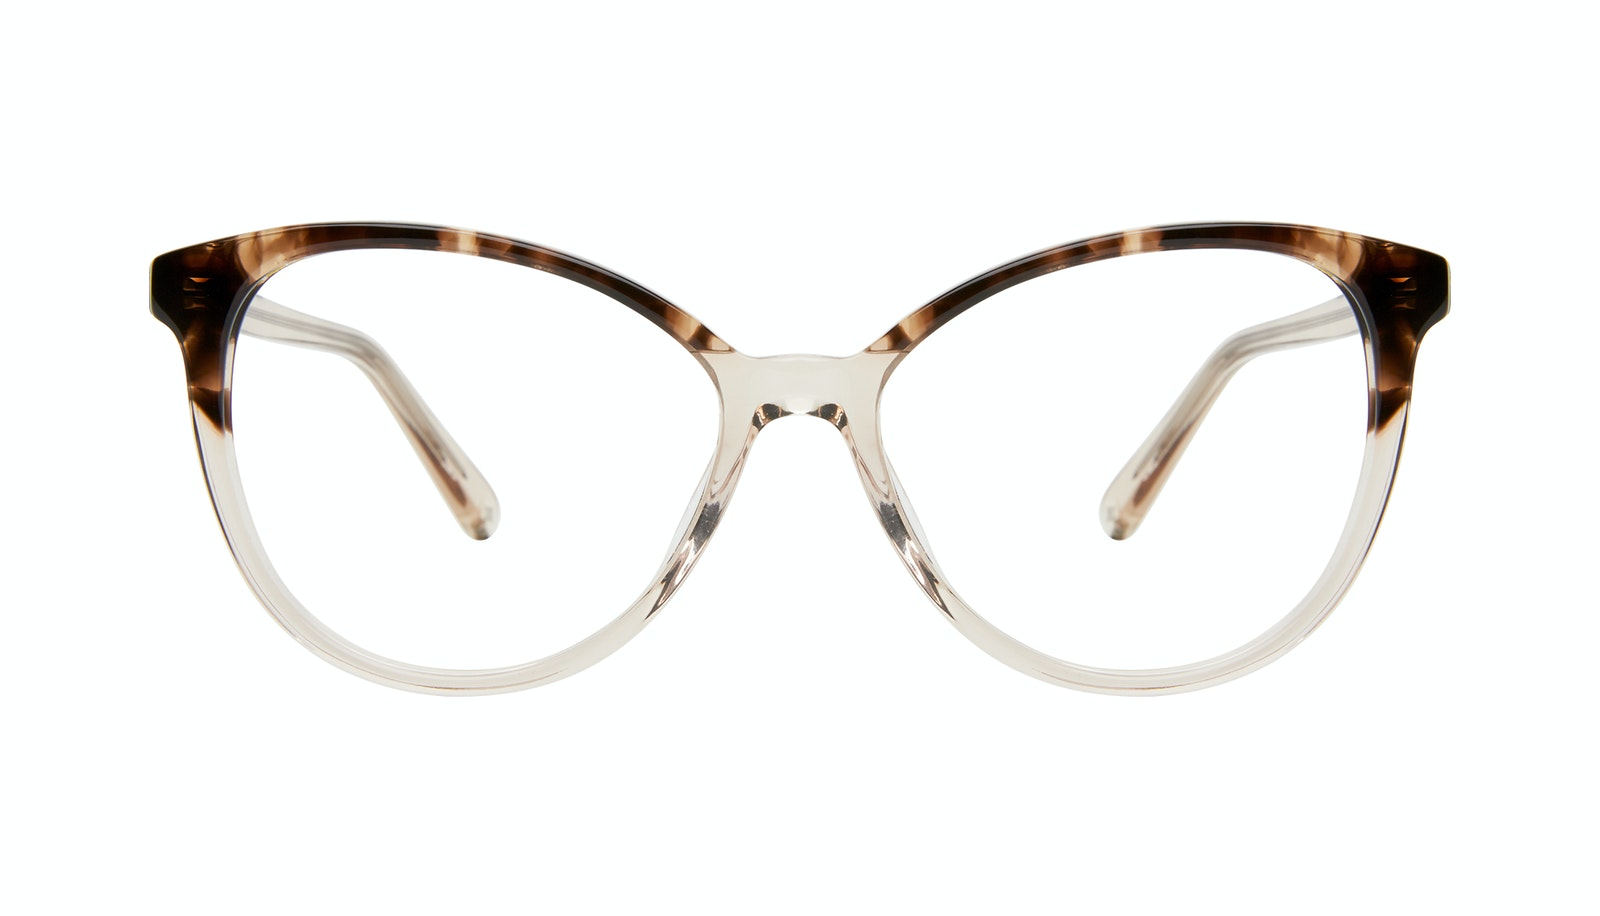 Affordable Fashion Glasses Cat Eye Eyeglasses Women Esprit L Golden Tortoise